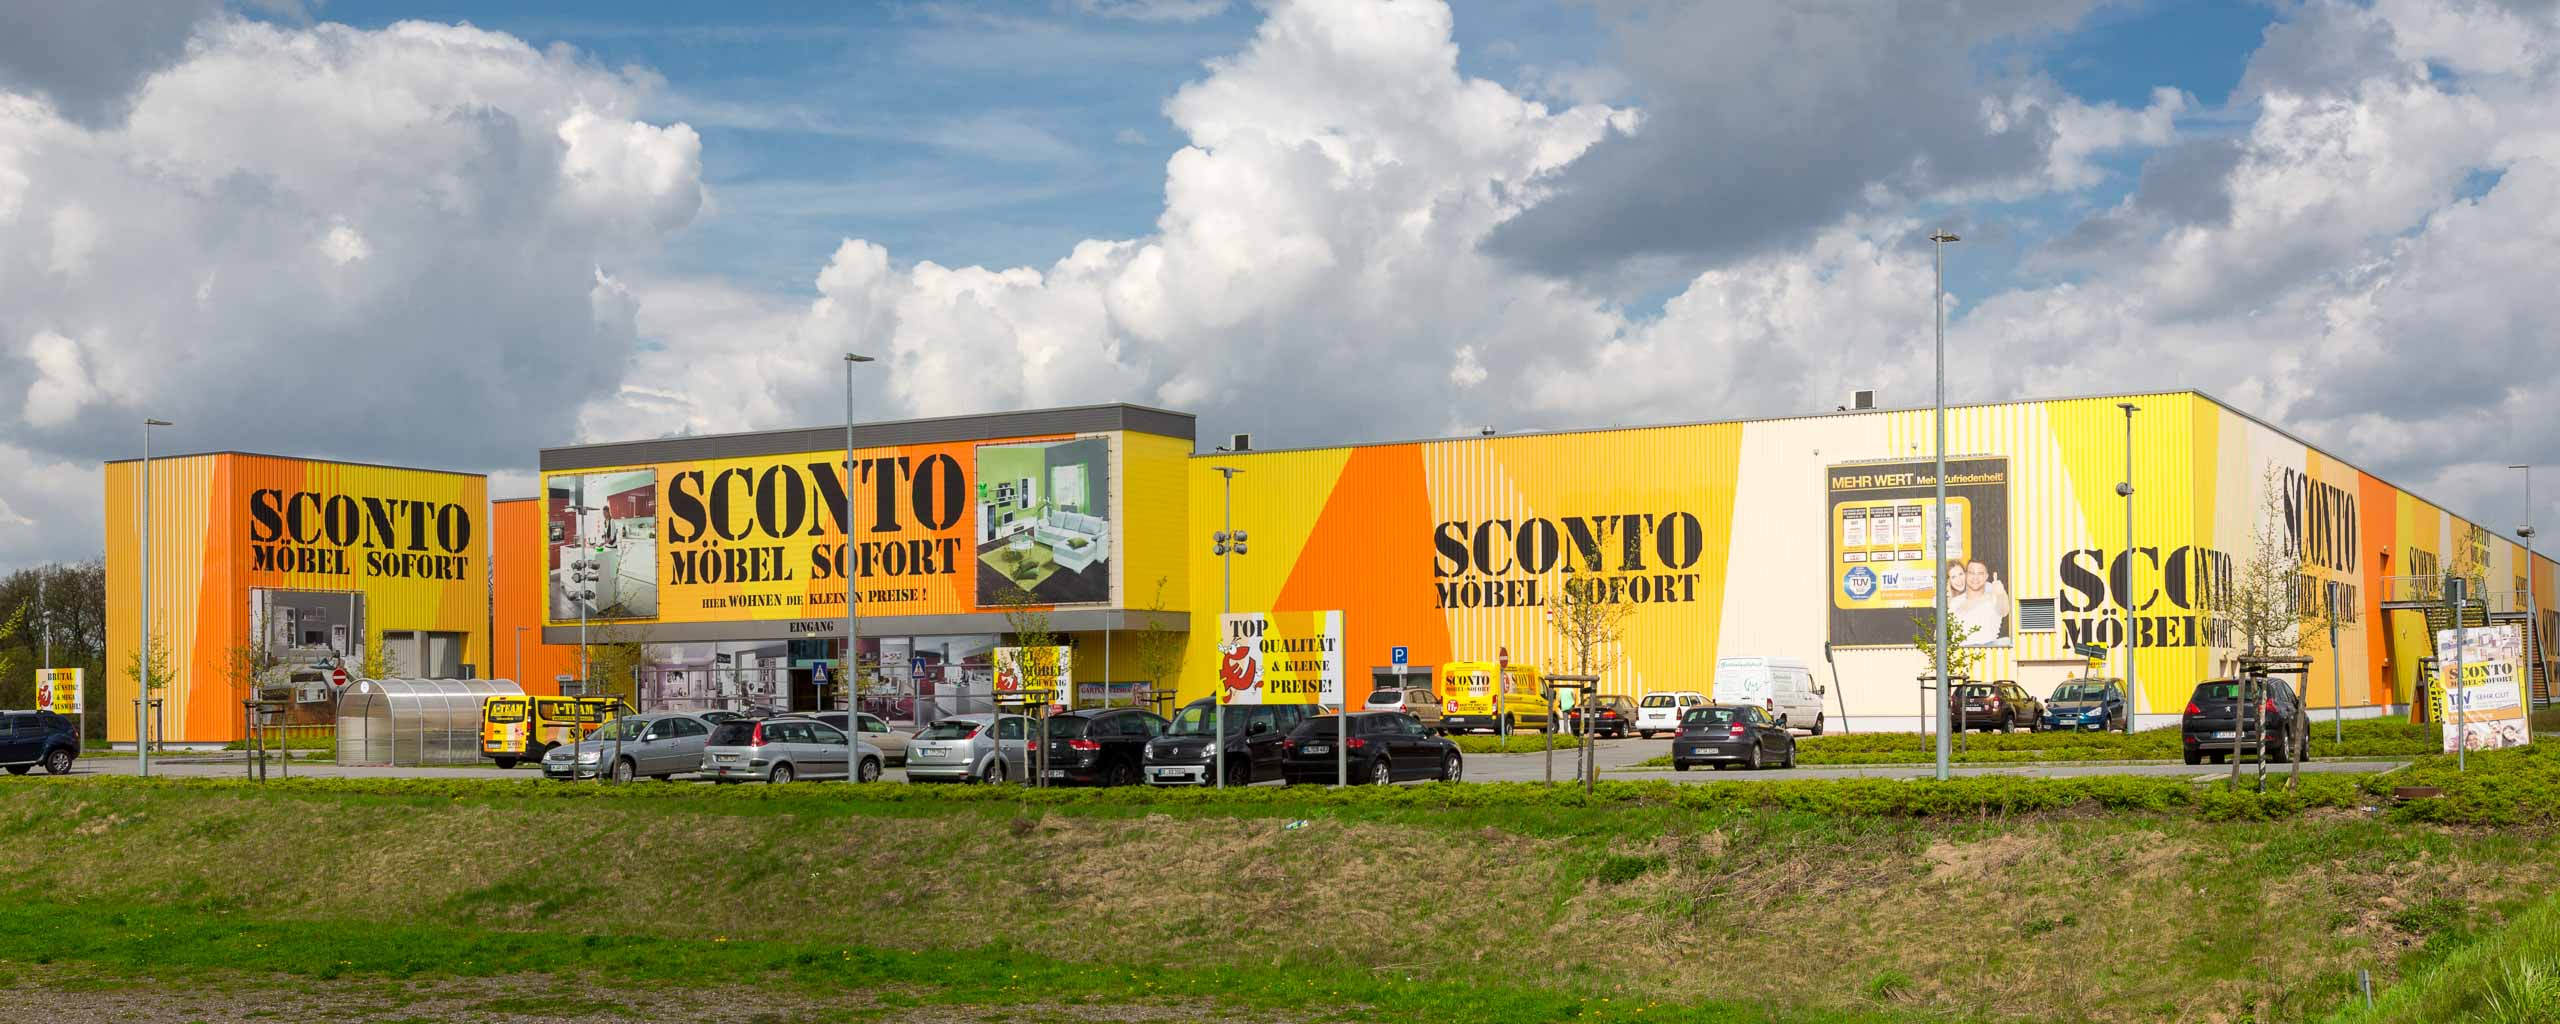 Sconto beim LUV SHOPPING in Lübeck